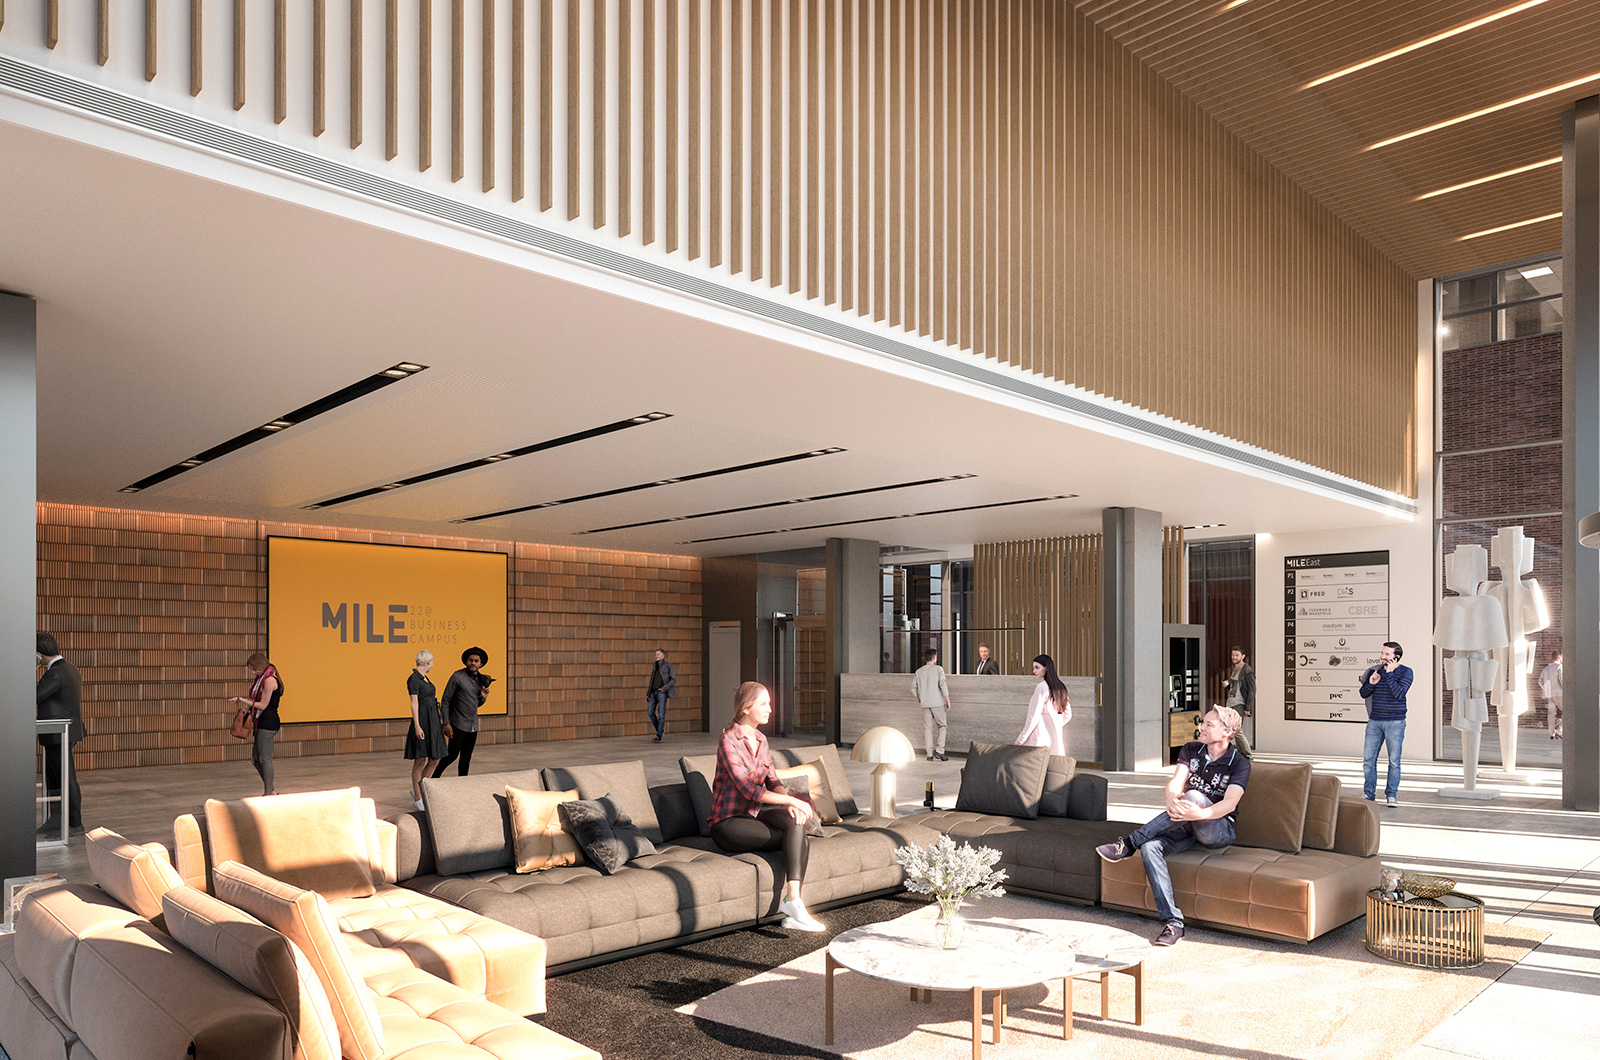 MILE BUSINESS CAMPUS LLULL LOBBY